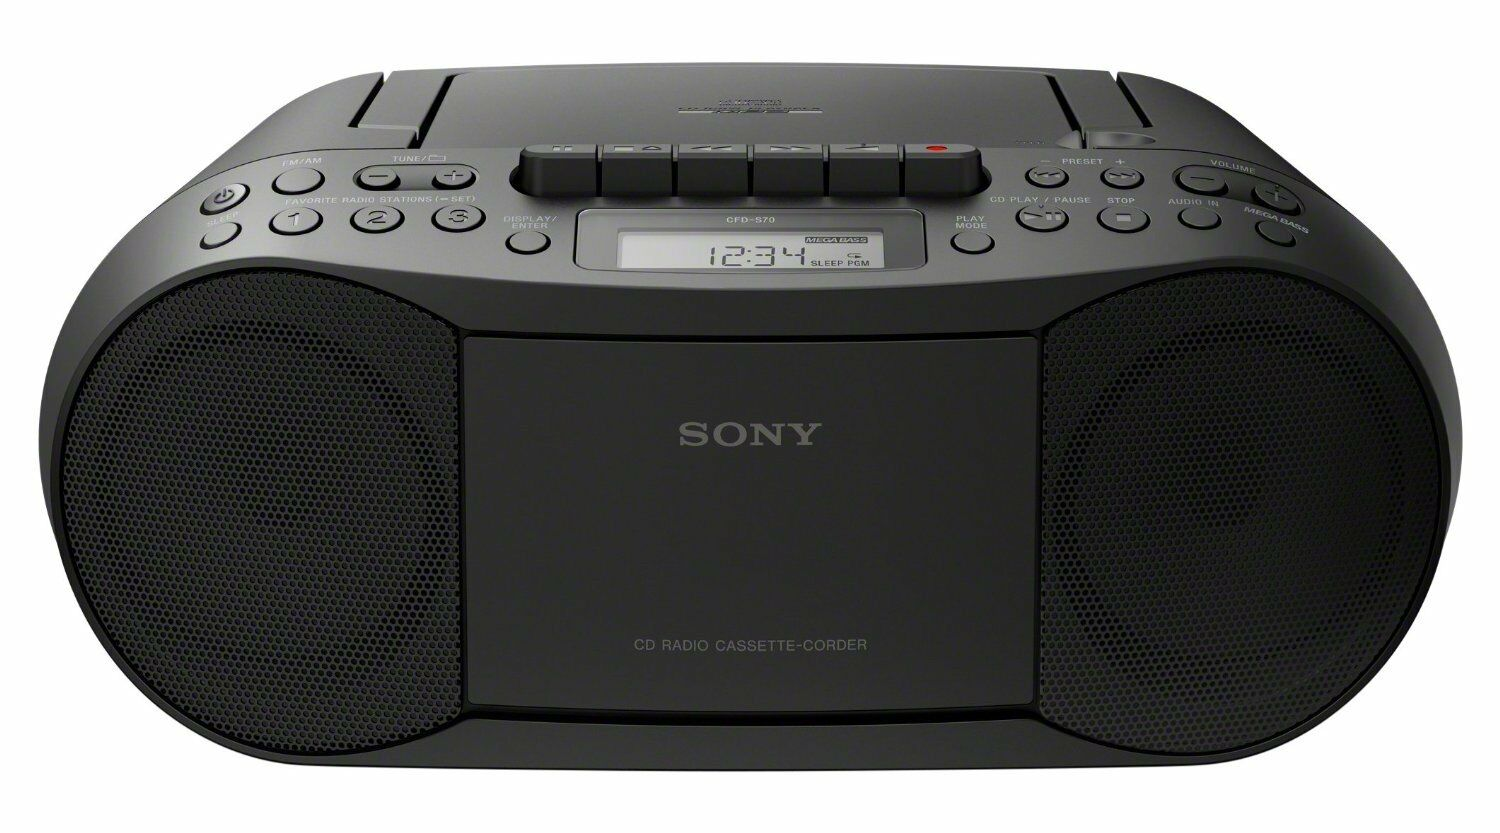 NEW Sony Boombox CDPlayer Radio Stereo Cassette CD CFD-S70 Black